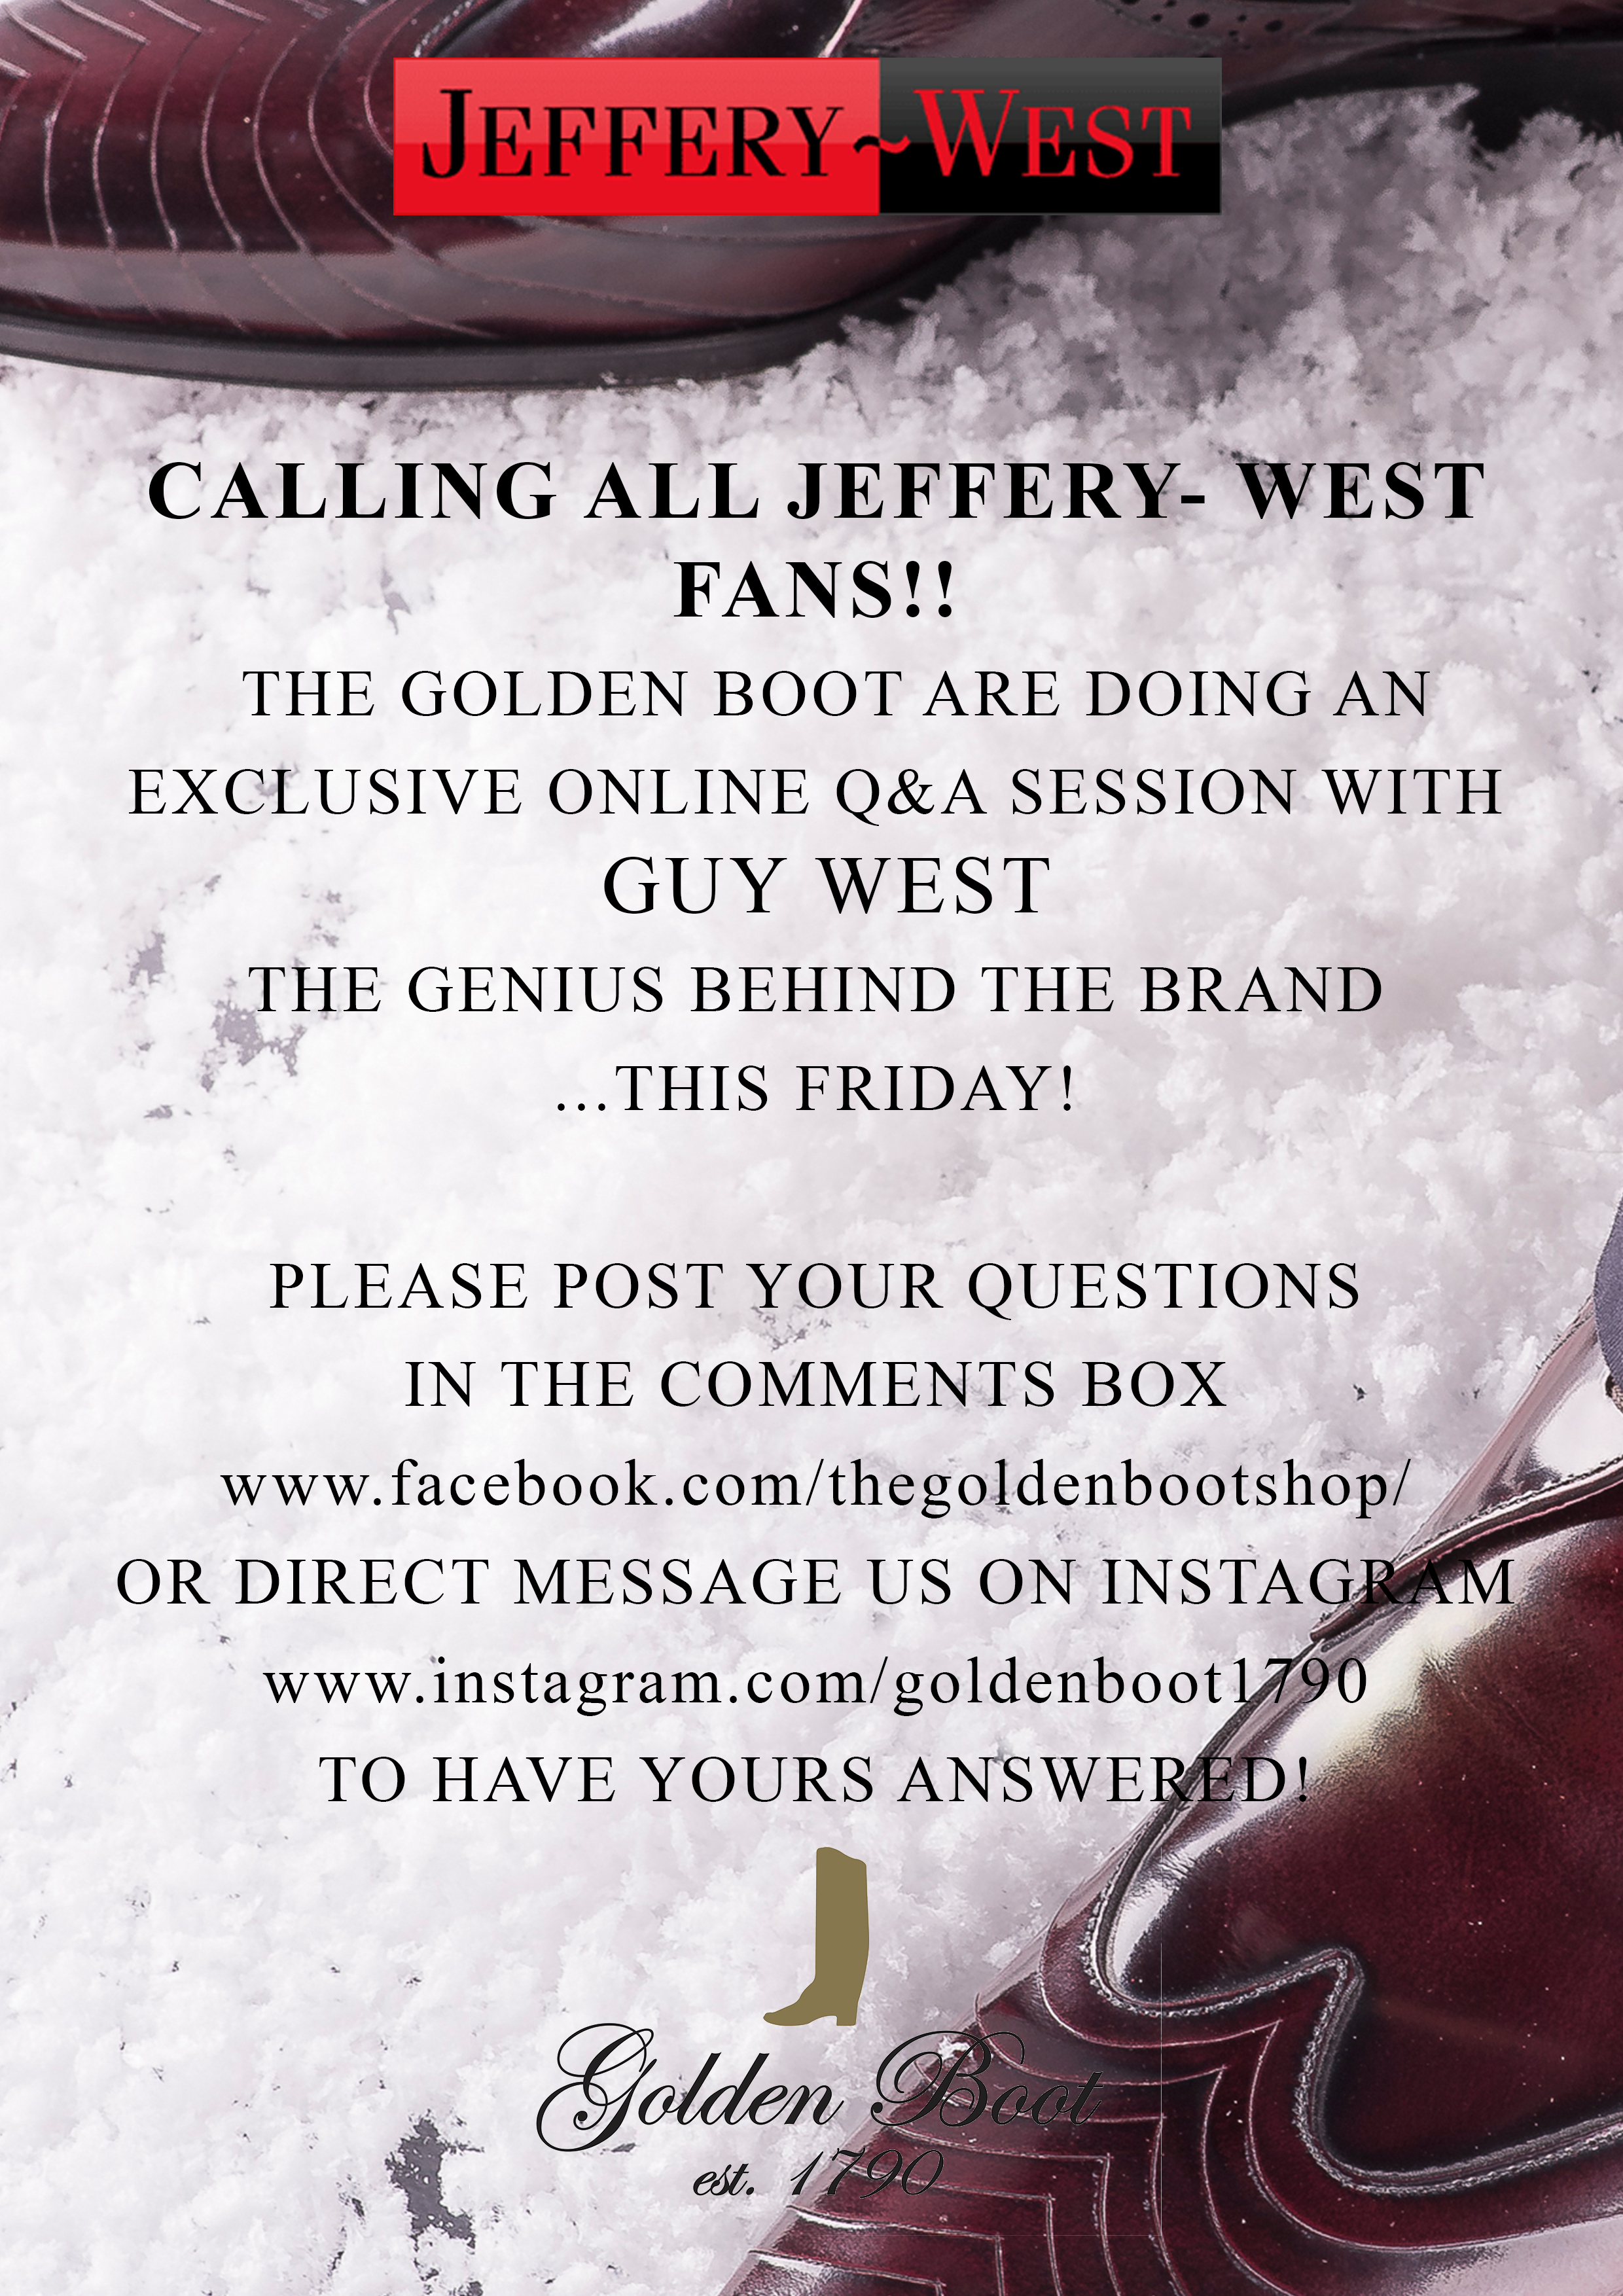 Jeffery-West Q&A! Have your questions answered!